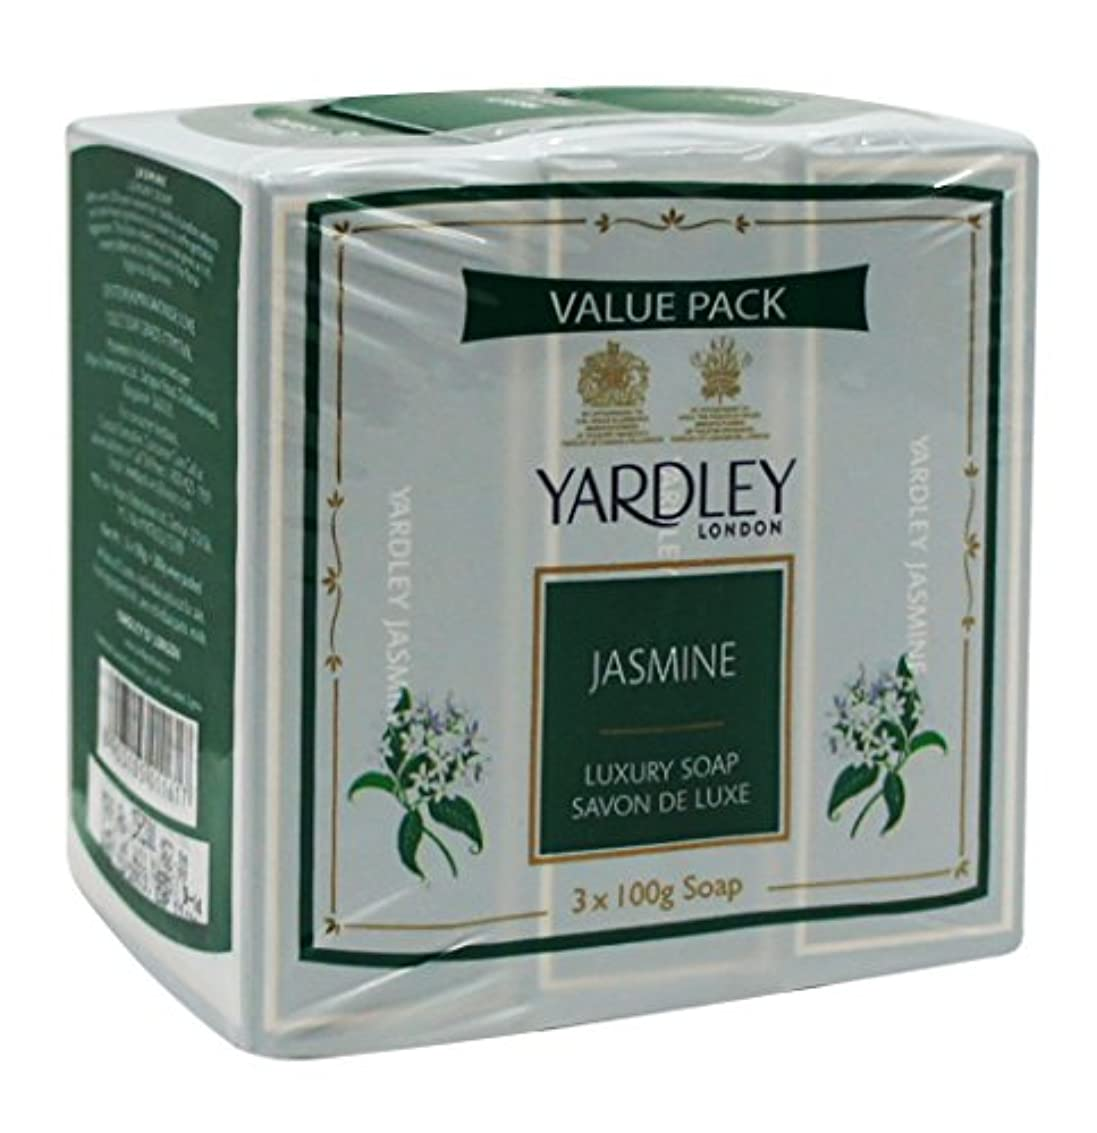 気体のダイアクリティカル傾向があるYardley London Value Pack Luxury Soap 3x100g Jasmine by Yardley